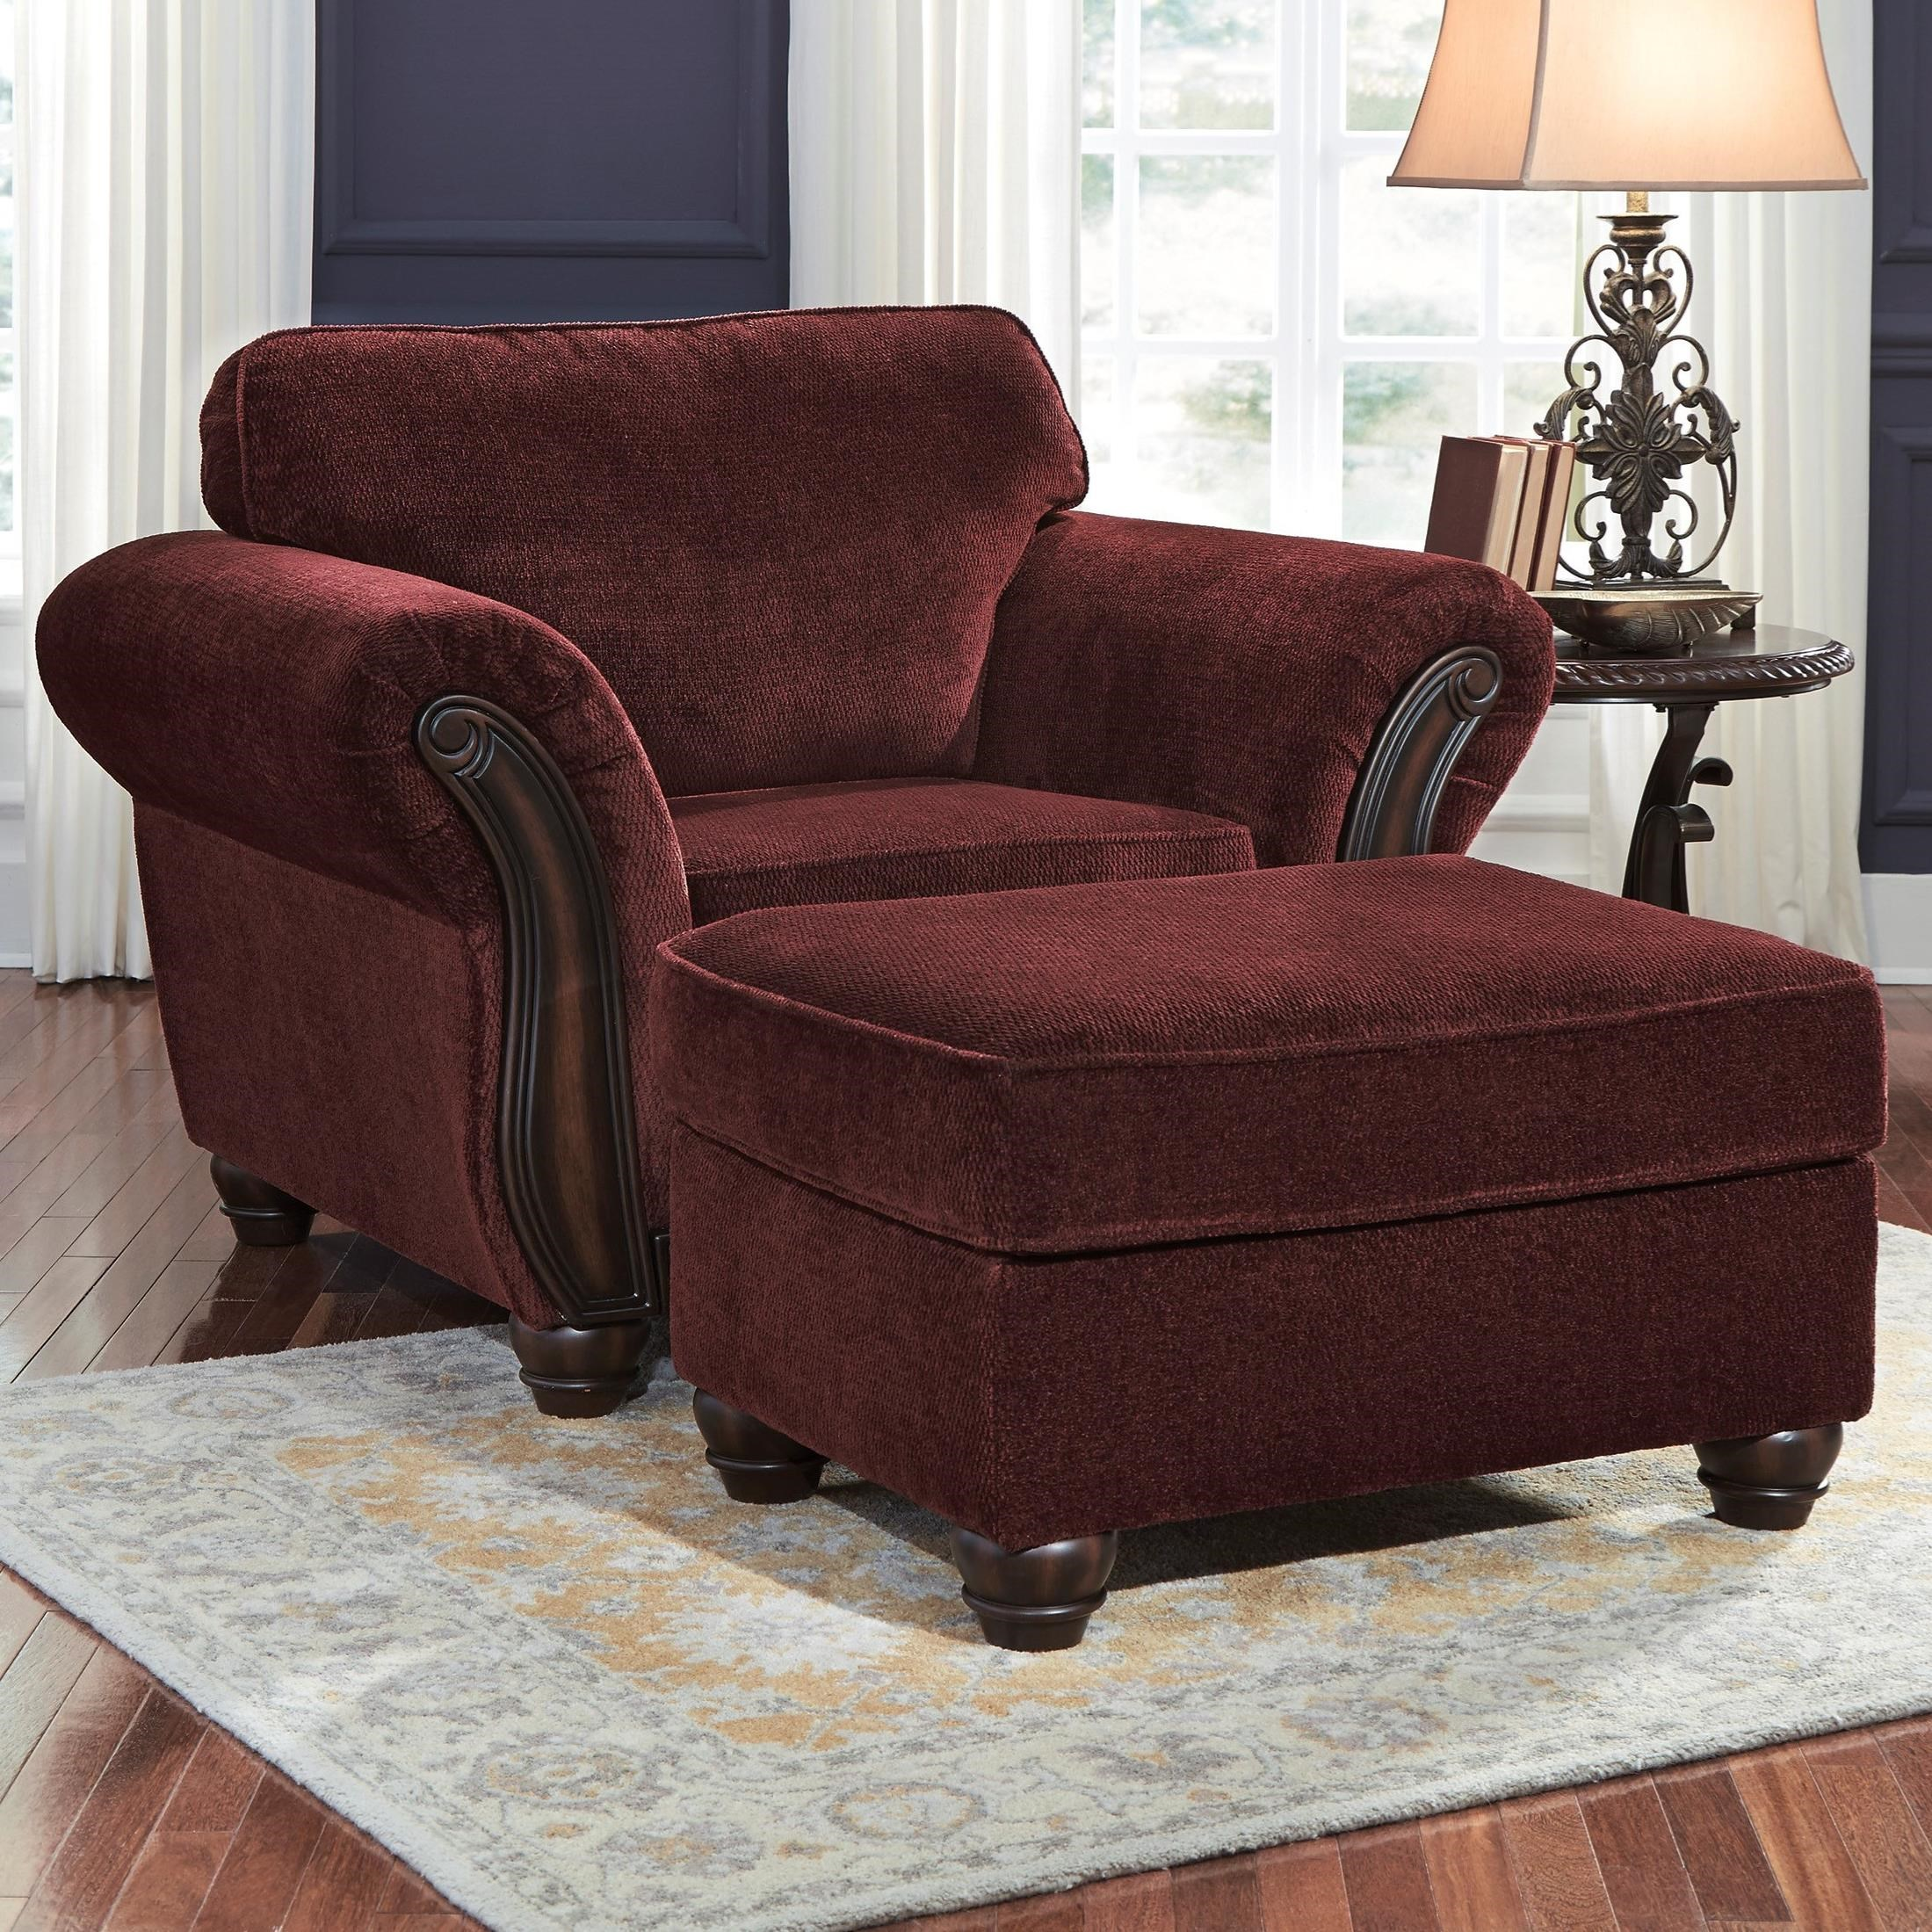 Signature Design by Ashley Chesterbrook Chair & Ottoman - Item Number: 8810220+14